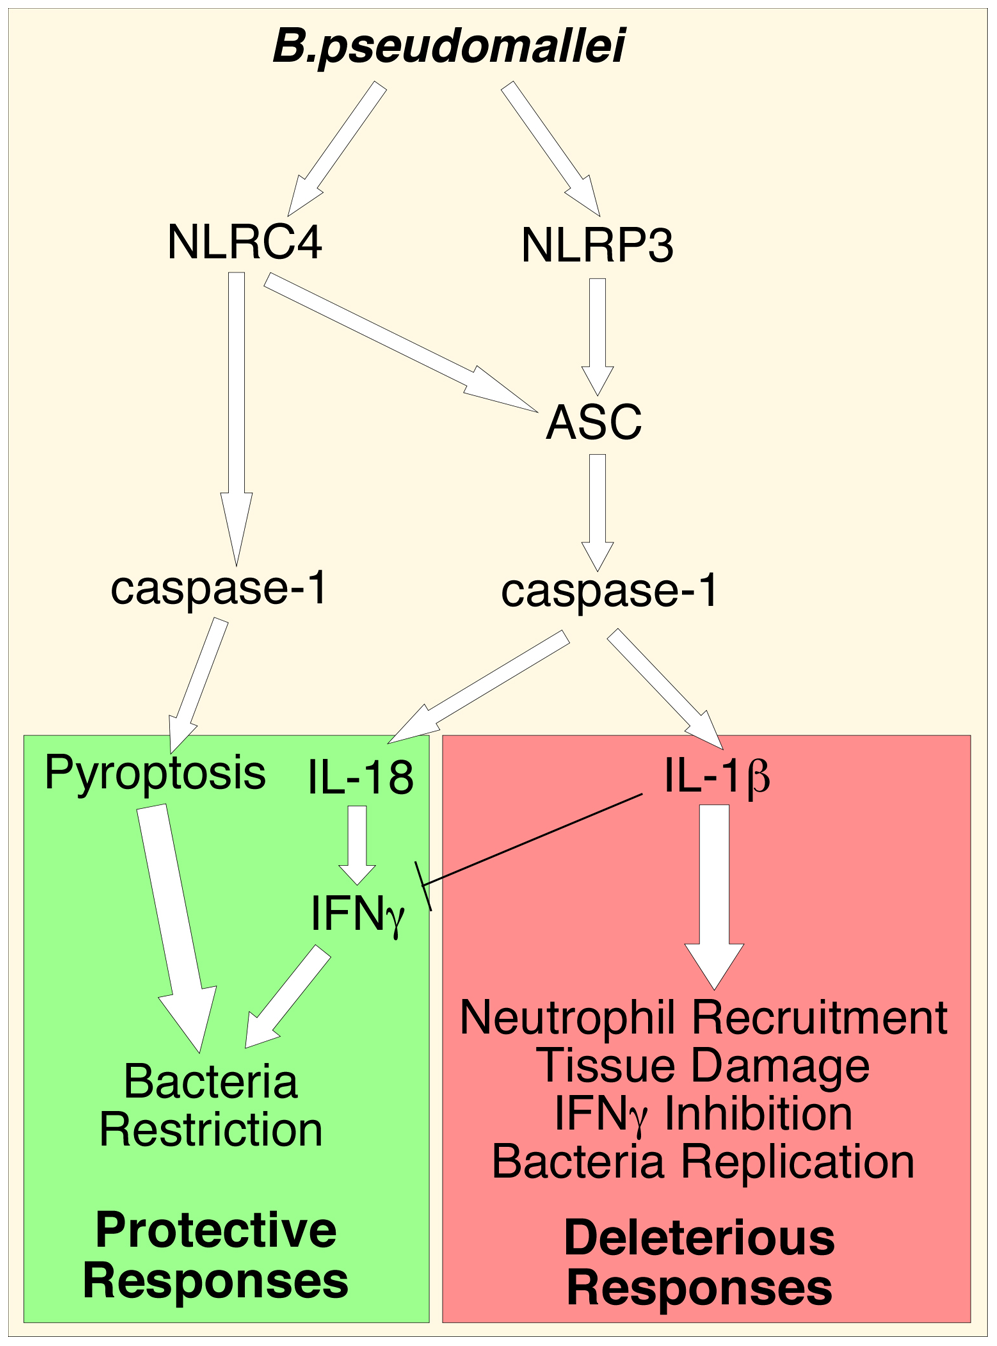 Inflammasomes-dependent protective and deleterious responses activated by <i>B. pseudomallei.</i>